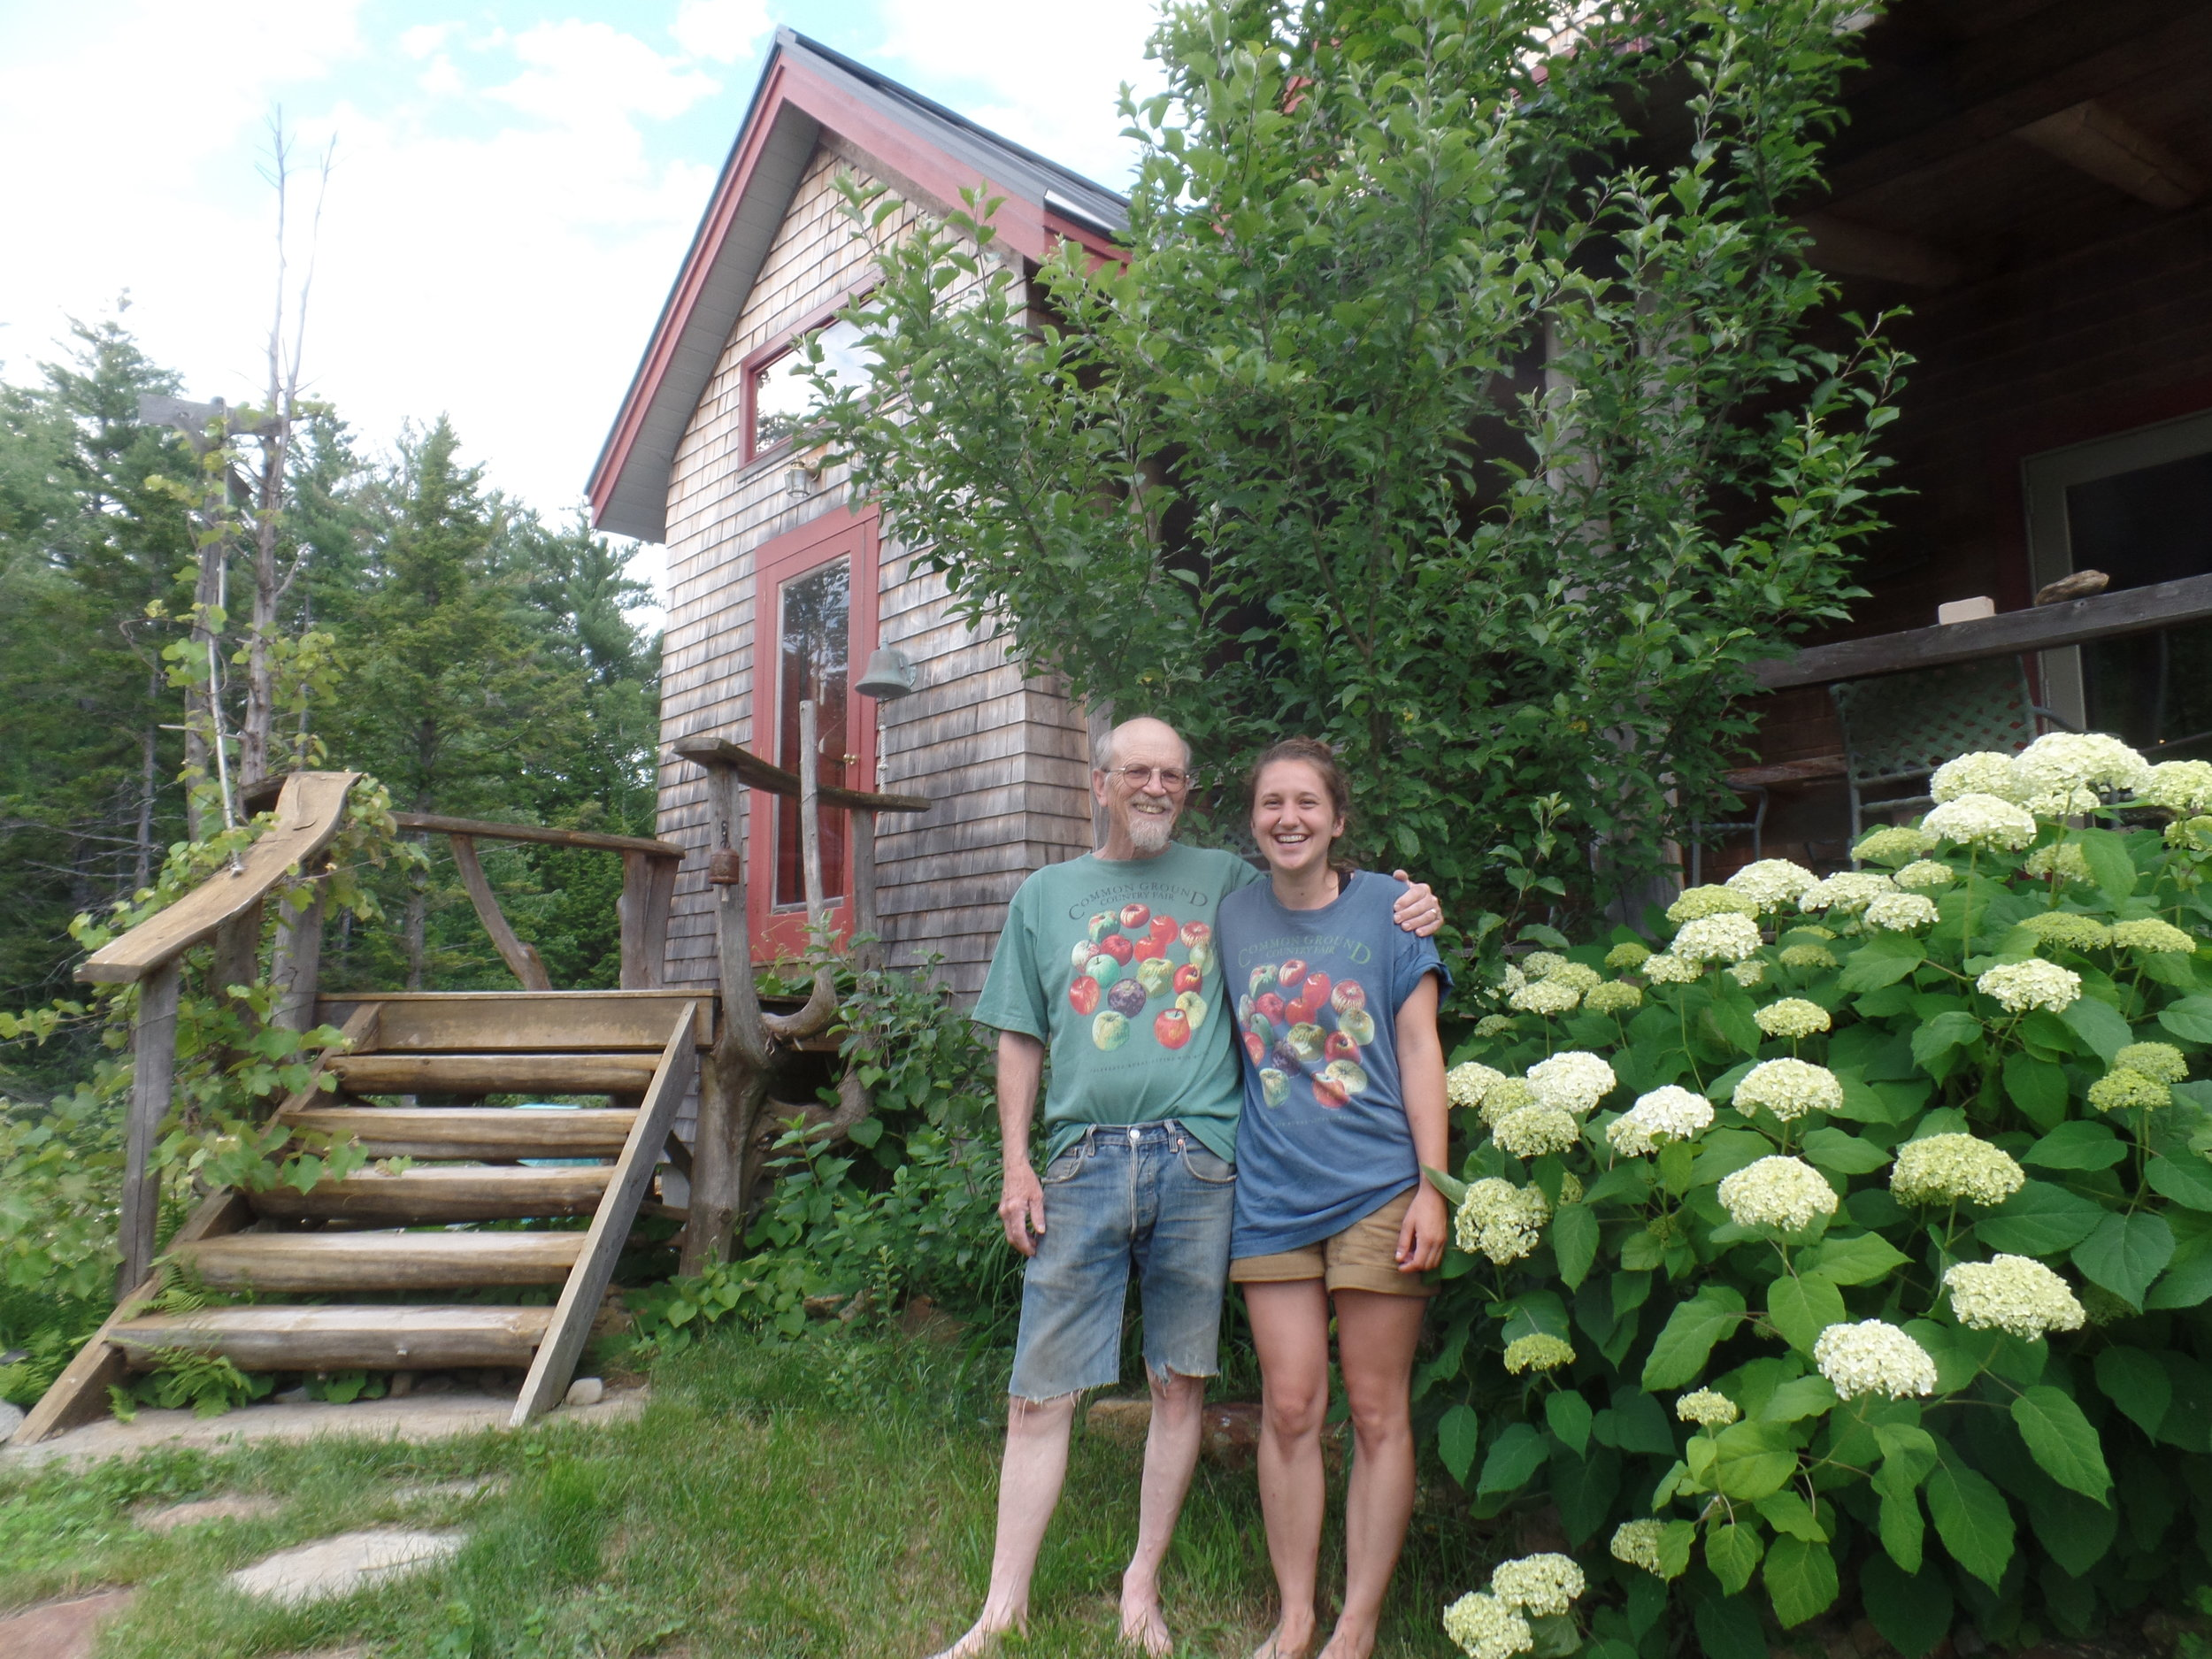 John Bunker & Laura Sieger in the new apple t-shirts at Super Chilly Farm in Palermo, ME photo by Kip Sieger